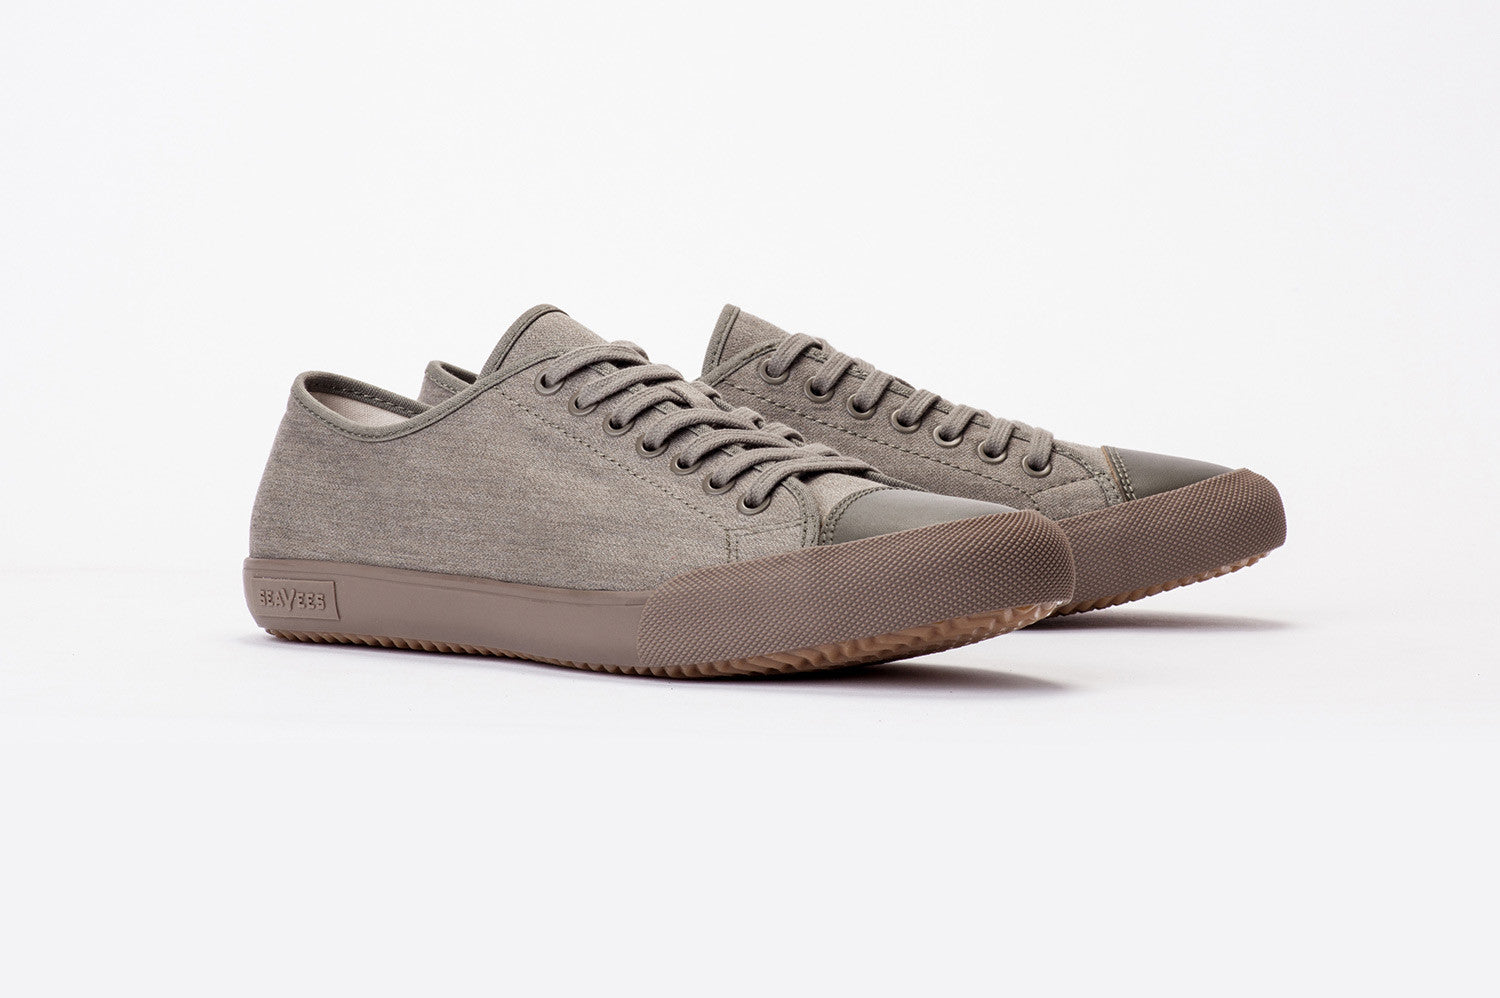 Mens - Army Issue Sneaker Wintertide - Olive